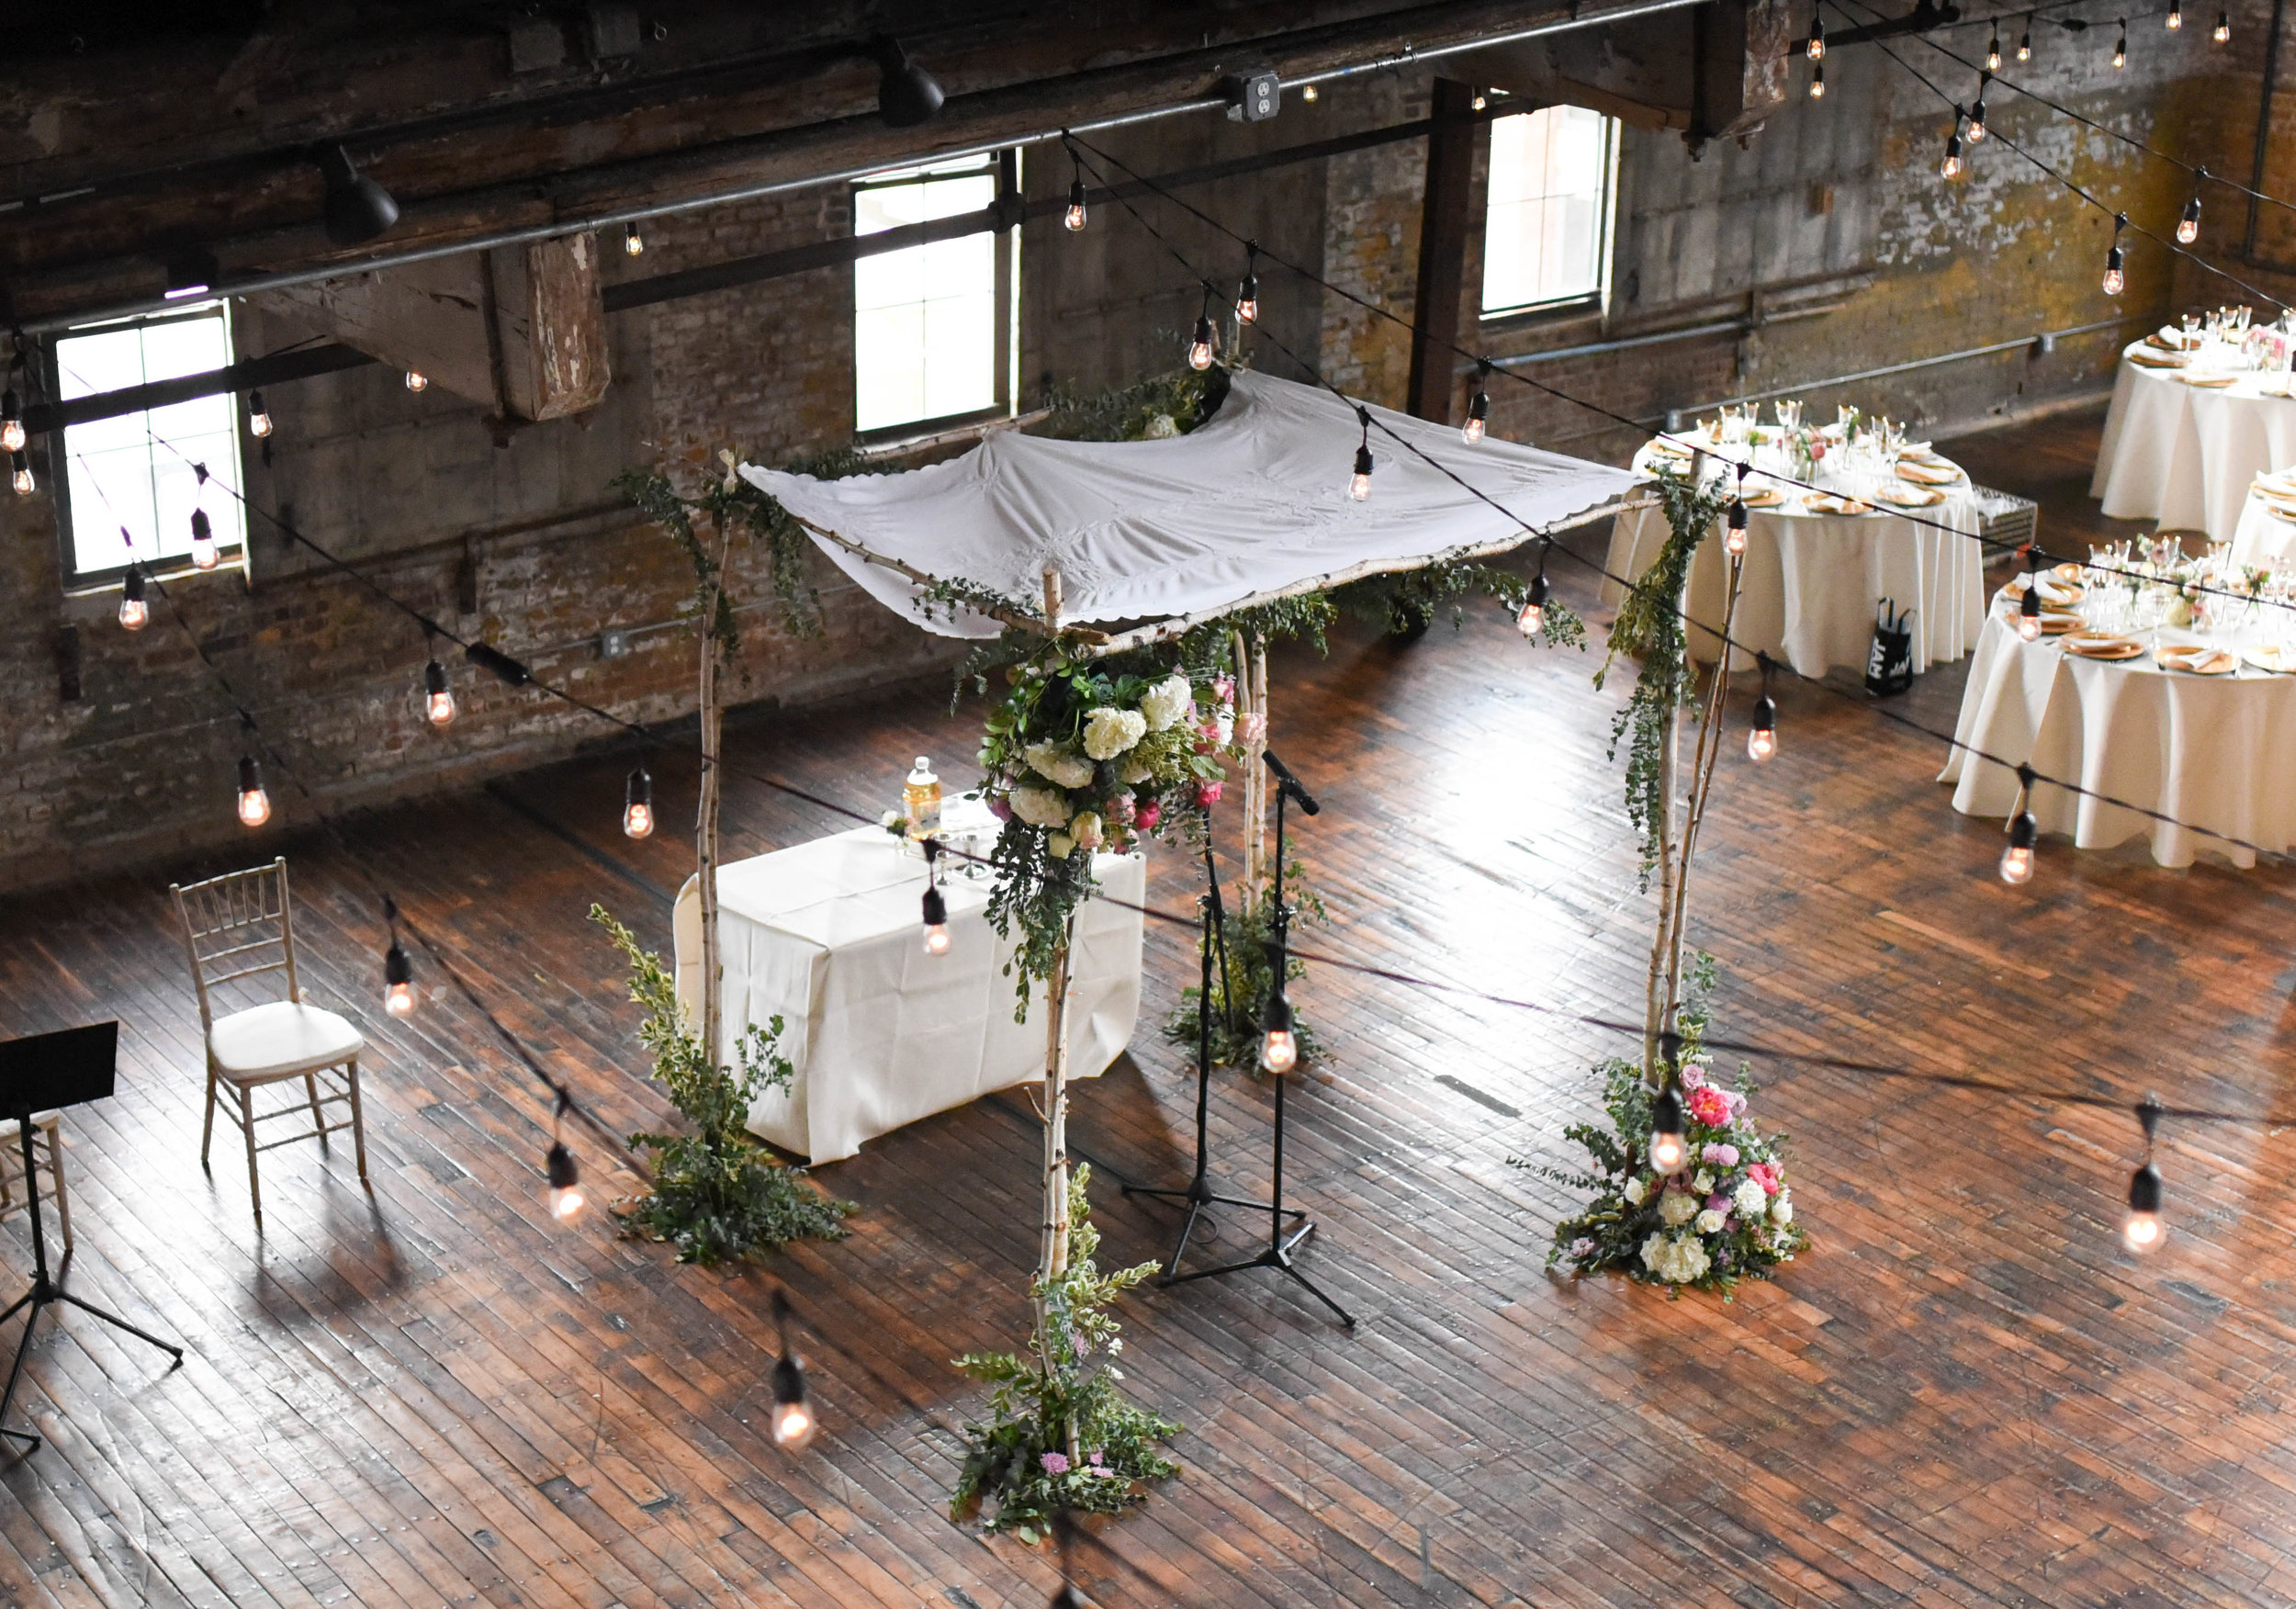 Another view of the chuppah at this Brooklyn summer wedding